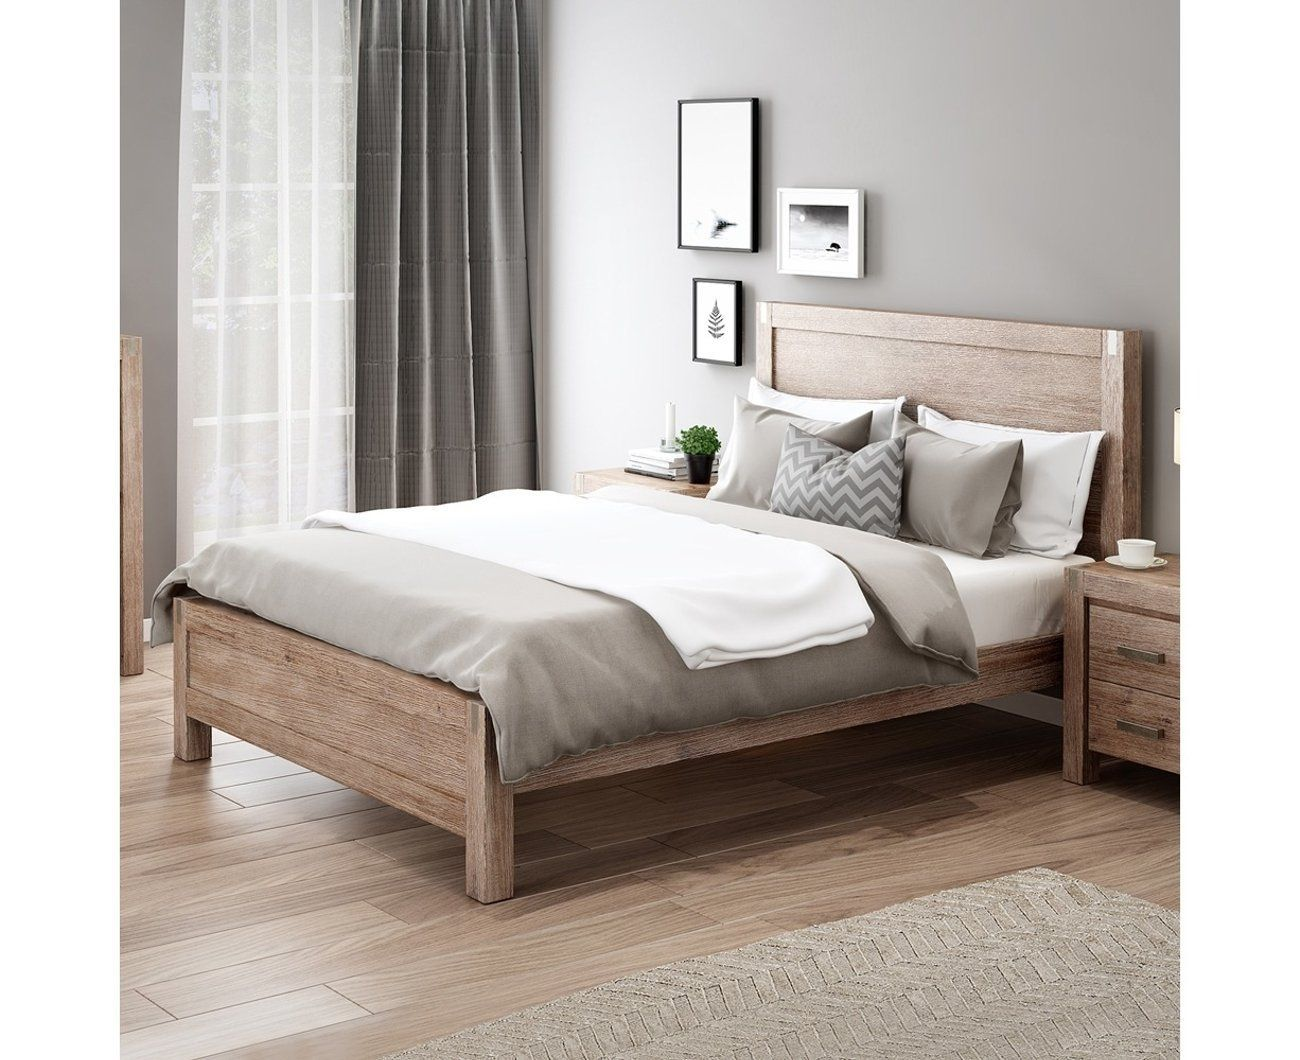 Nowra Bed Frame In Light Oak Colour Bedroom Furniture With Solid